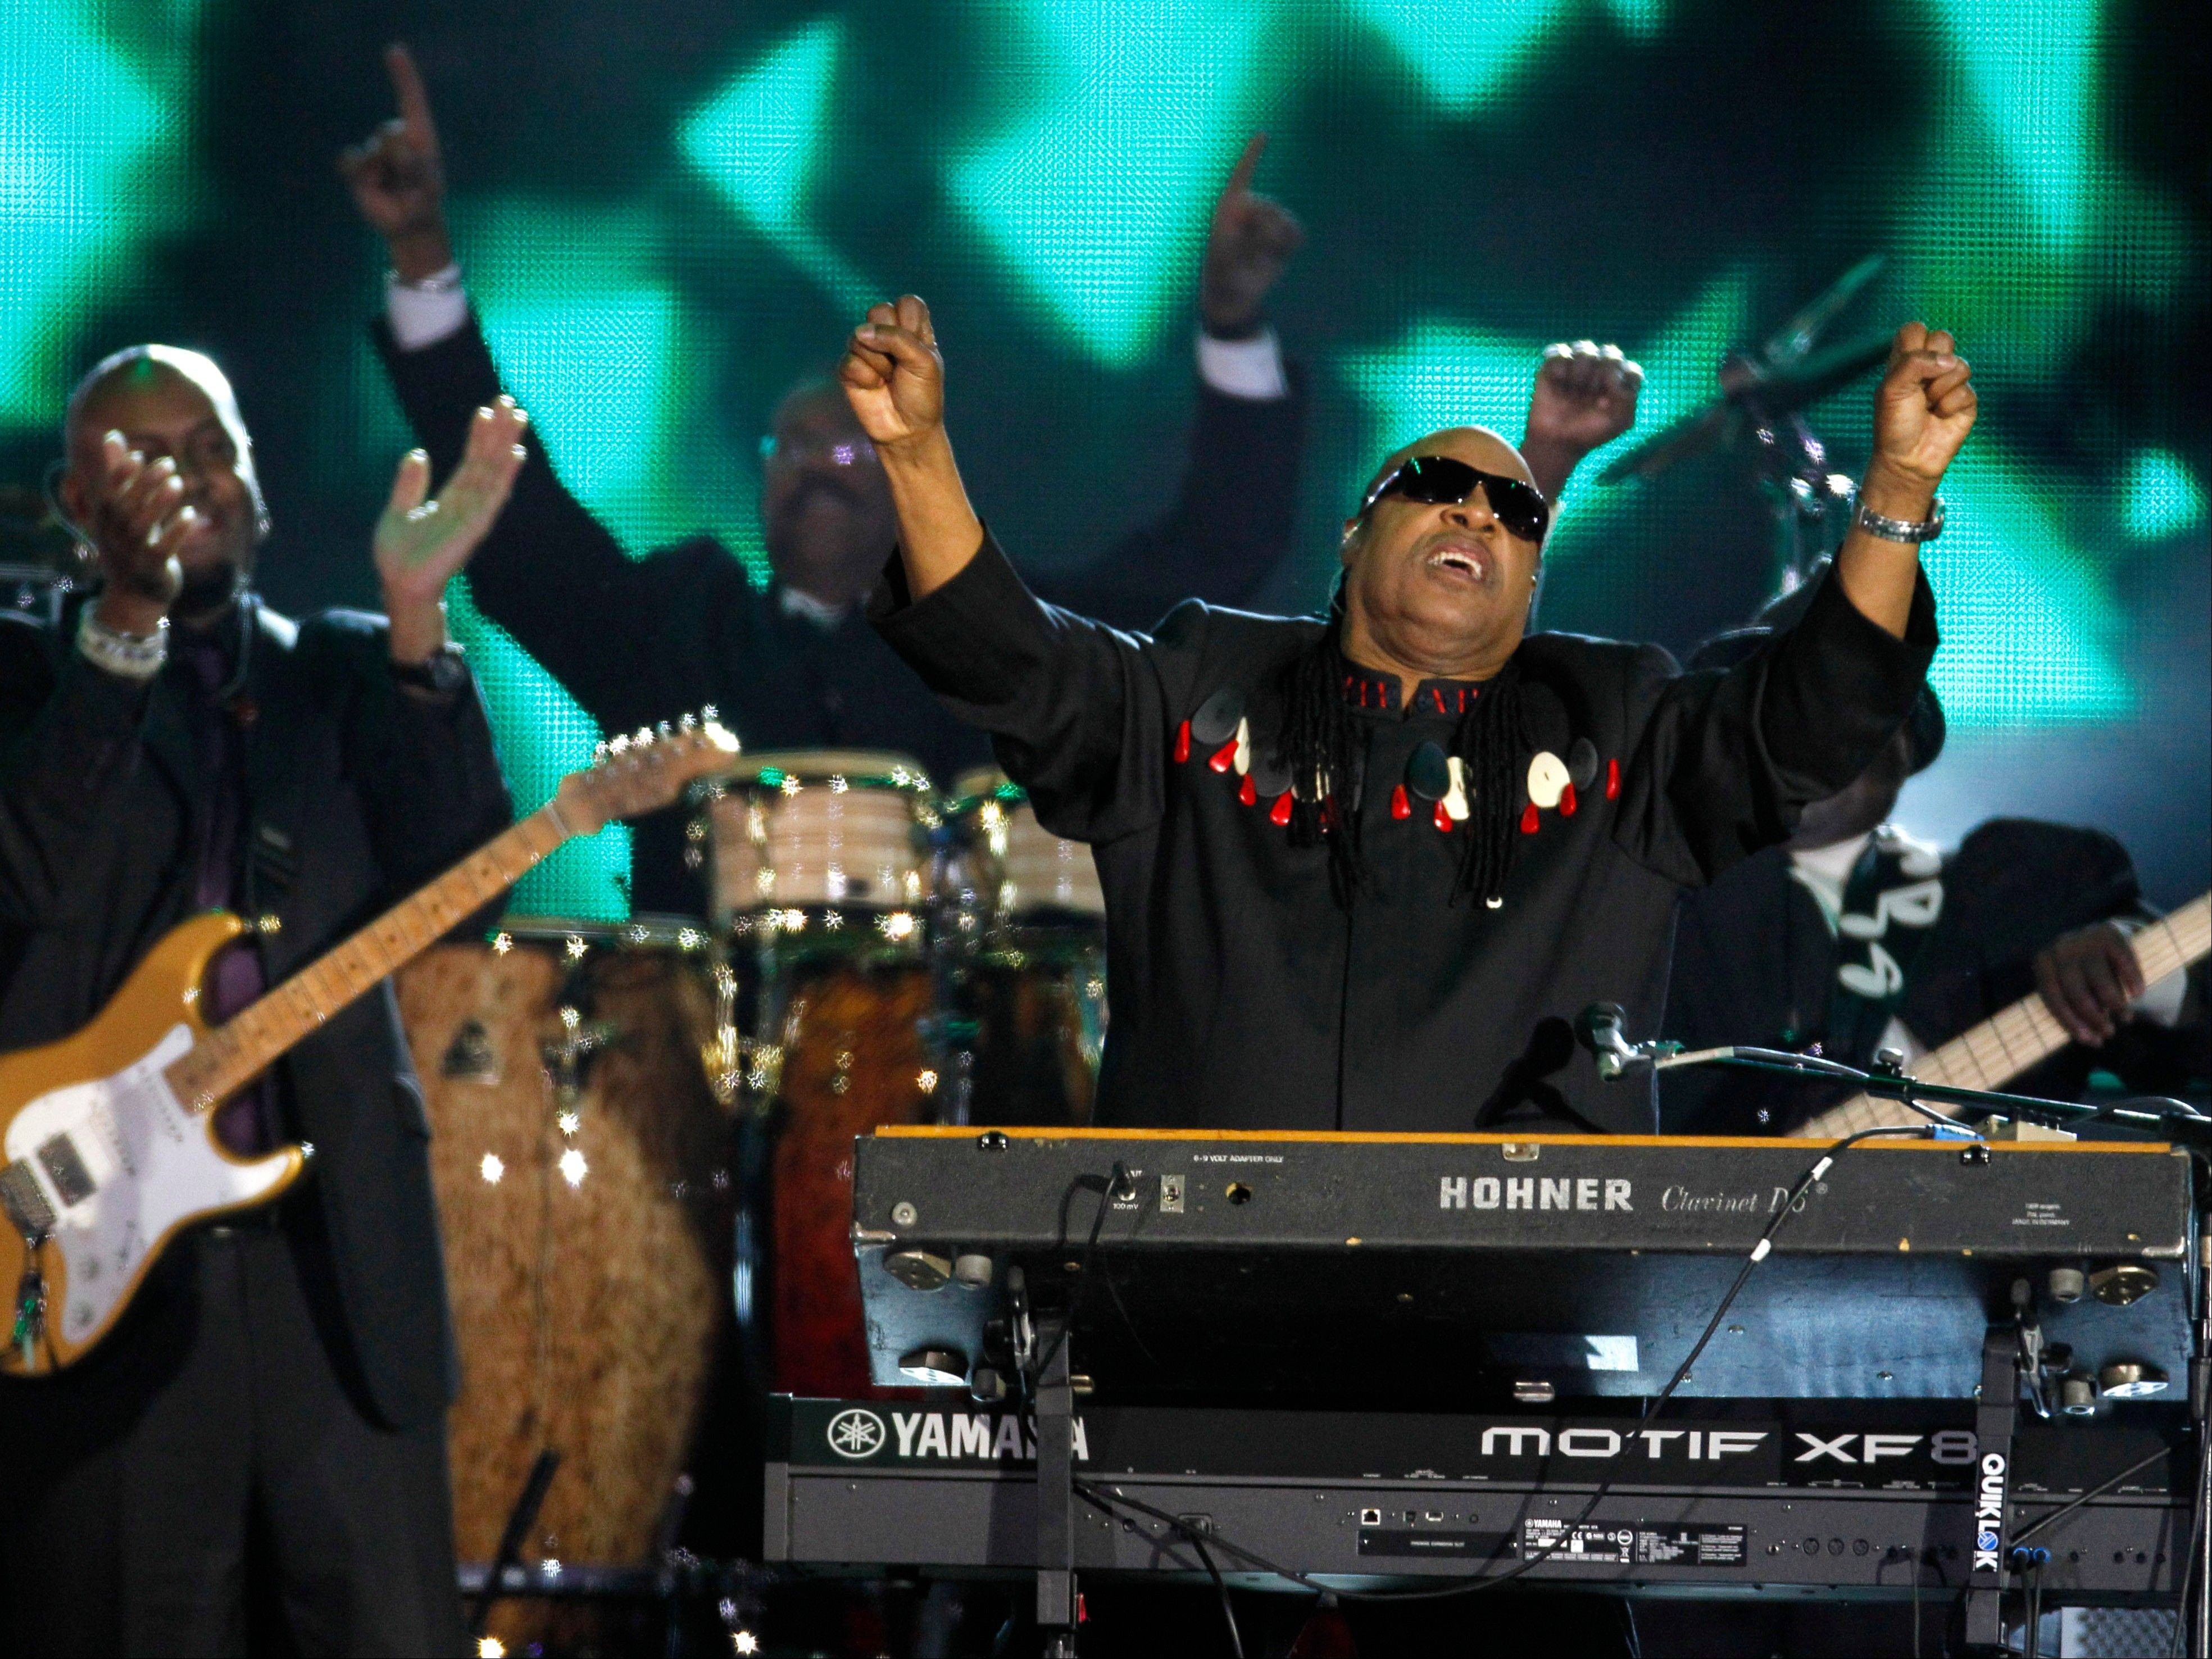 Stevie Wonder performs at the Queen's Jubilee Concert in front of Buckingham Palace, London, Monday, June 4, 2012. The concert is a part of four days of celebrations to mark the 60-year reign of Britain's Queen Elizabeth II.